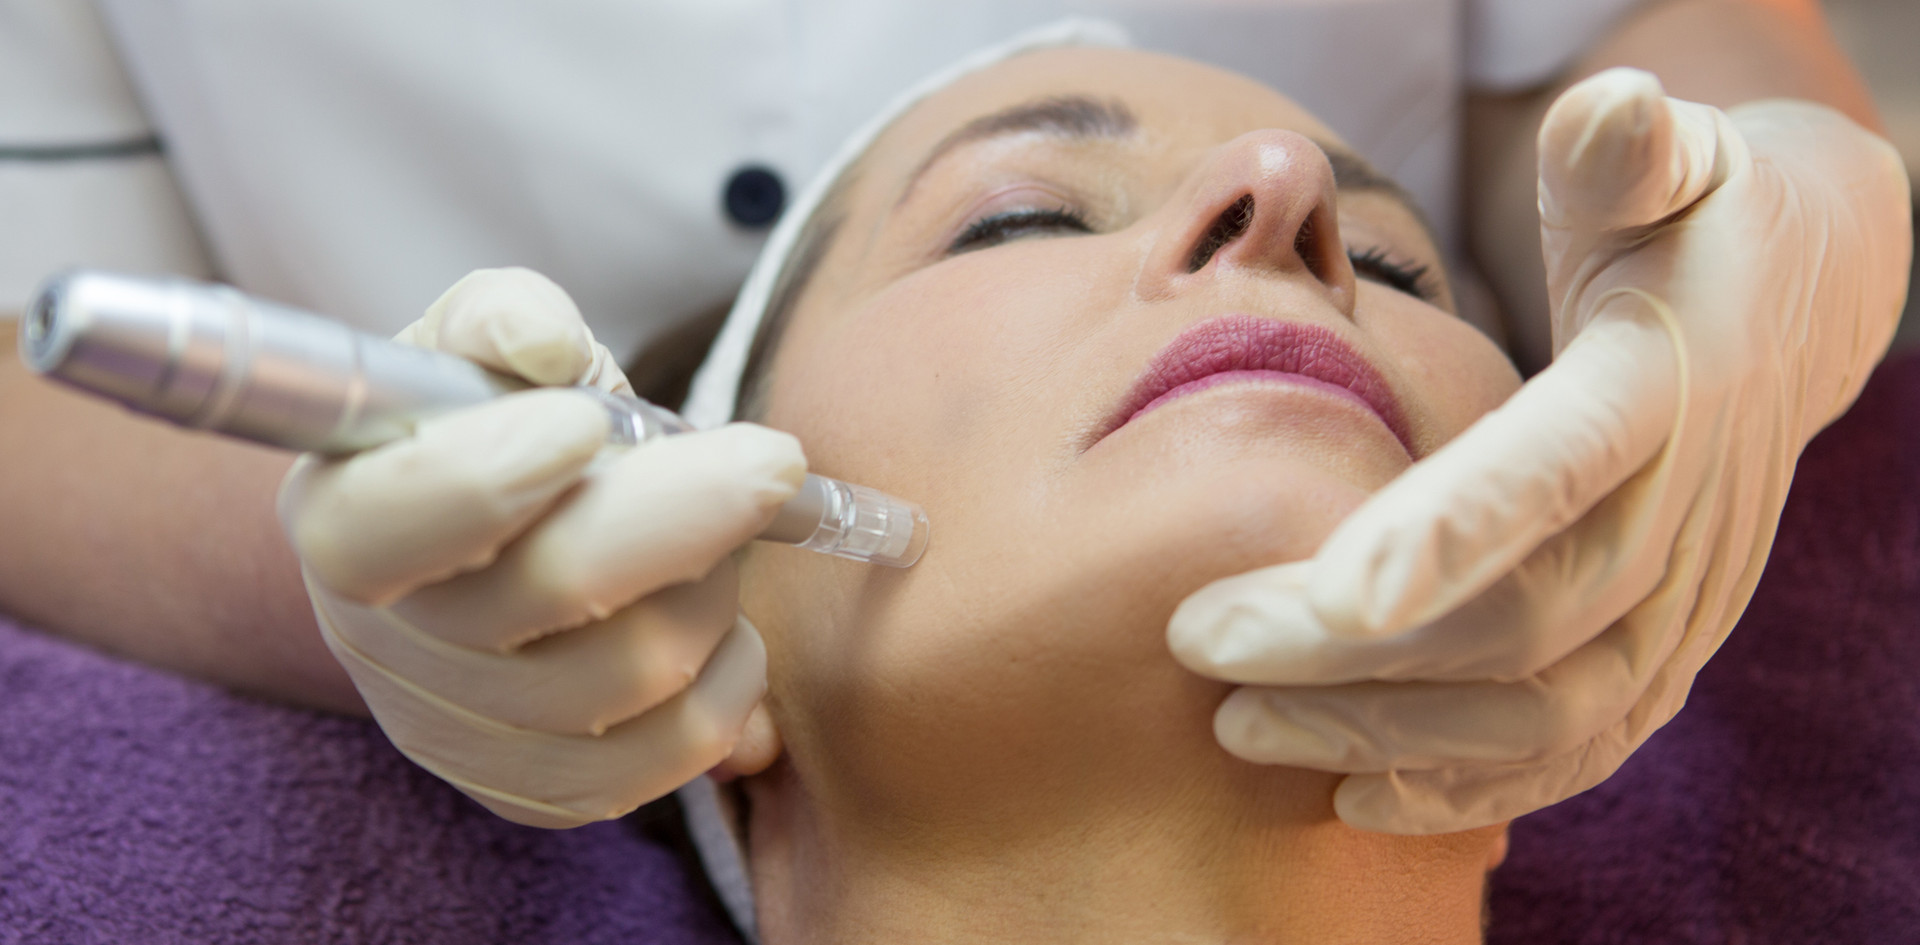 Microneedling/Collagen Induction Therapy